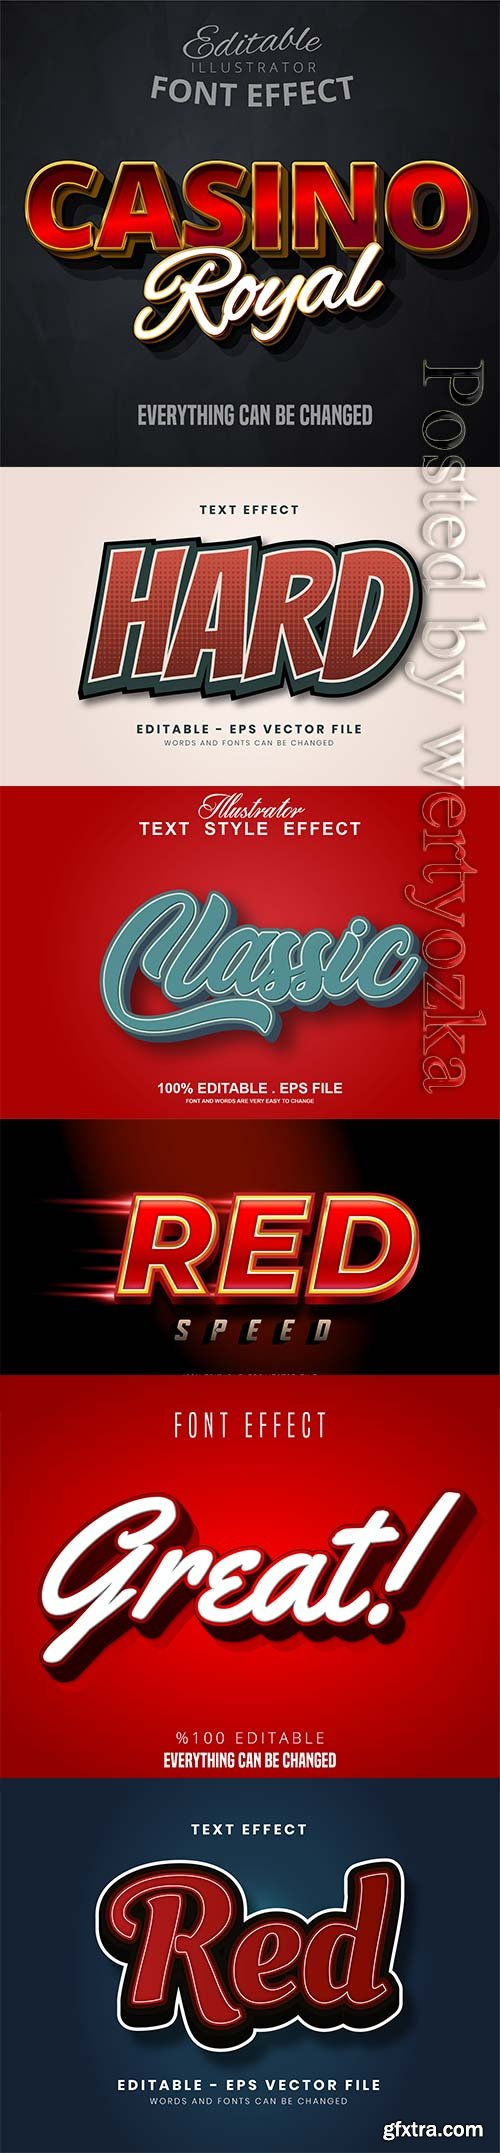 3d editable text style effect vector vol 297